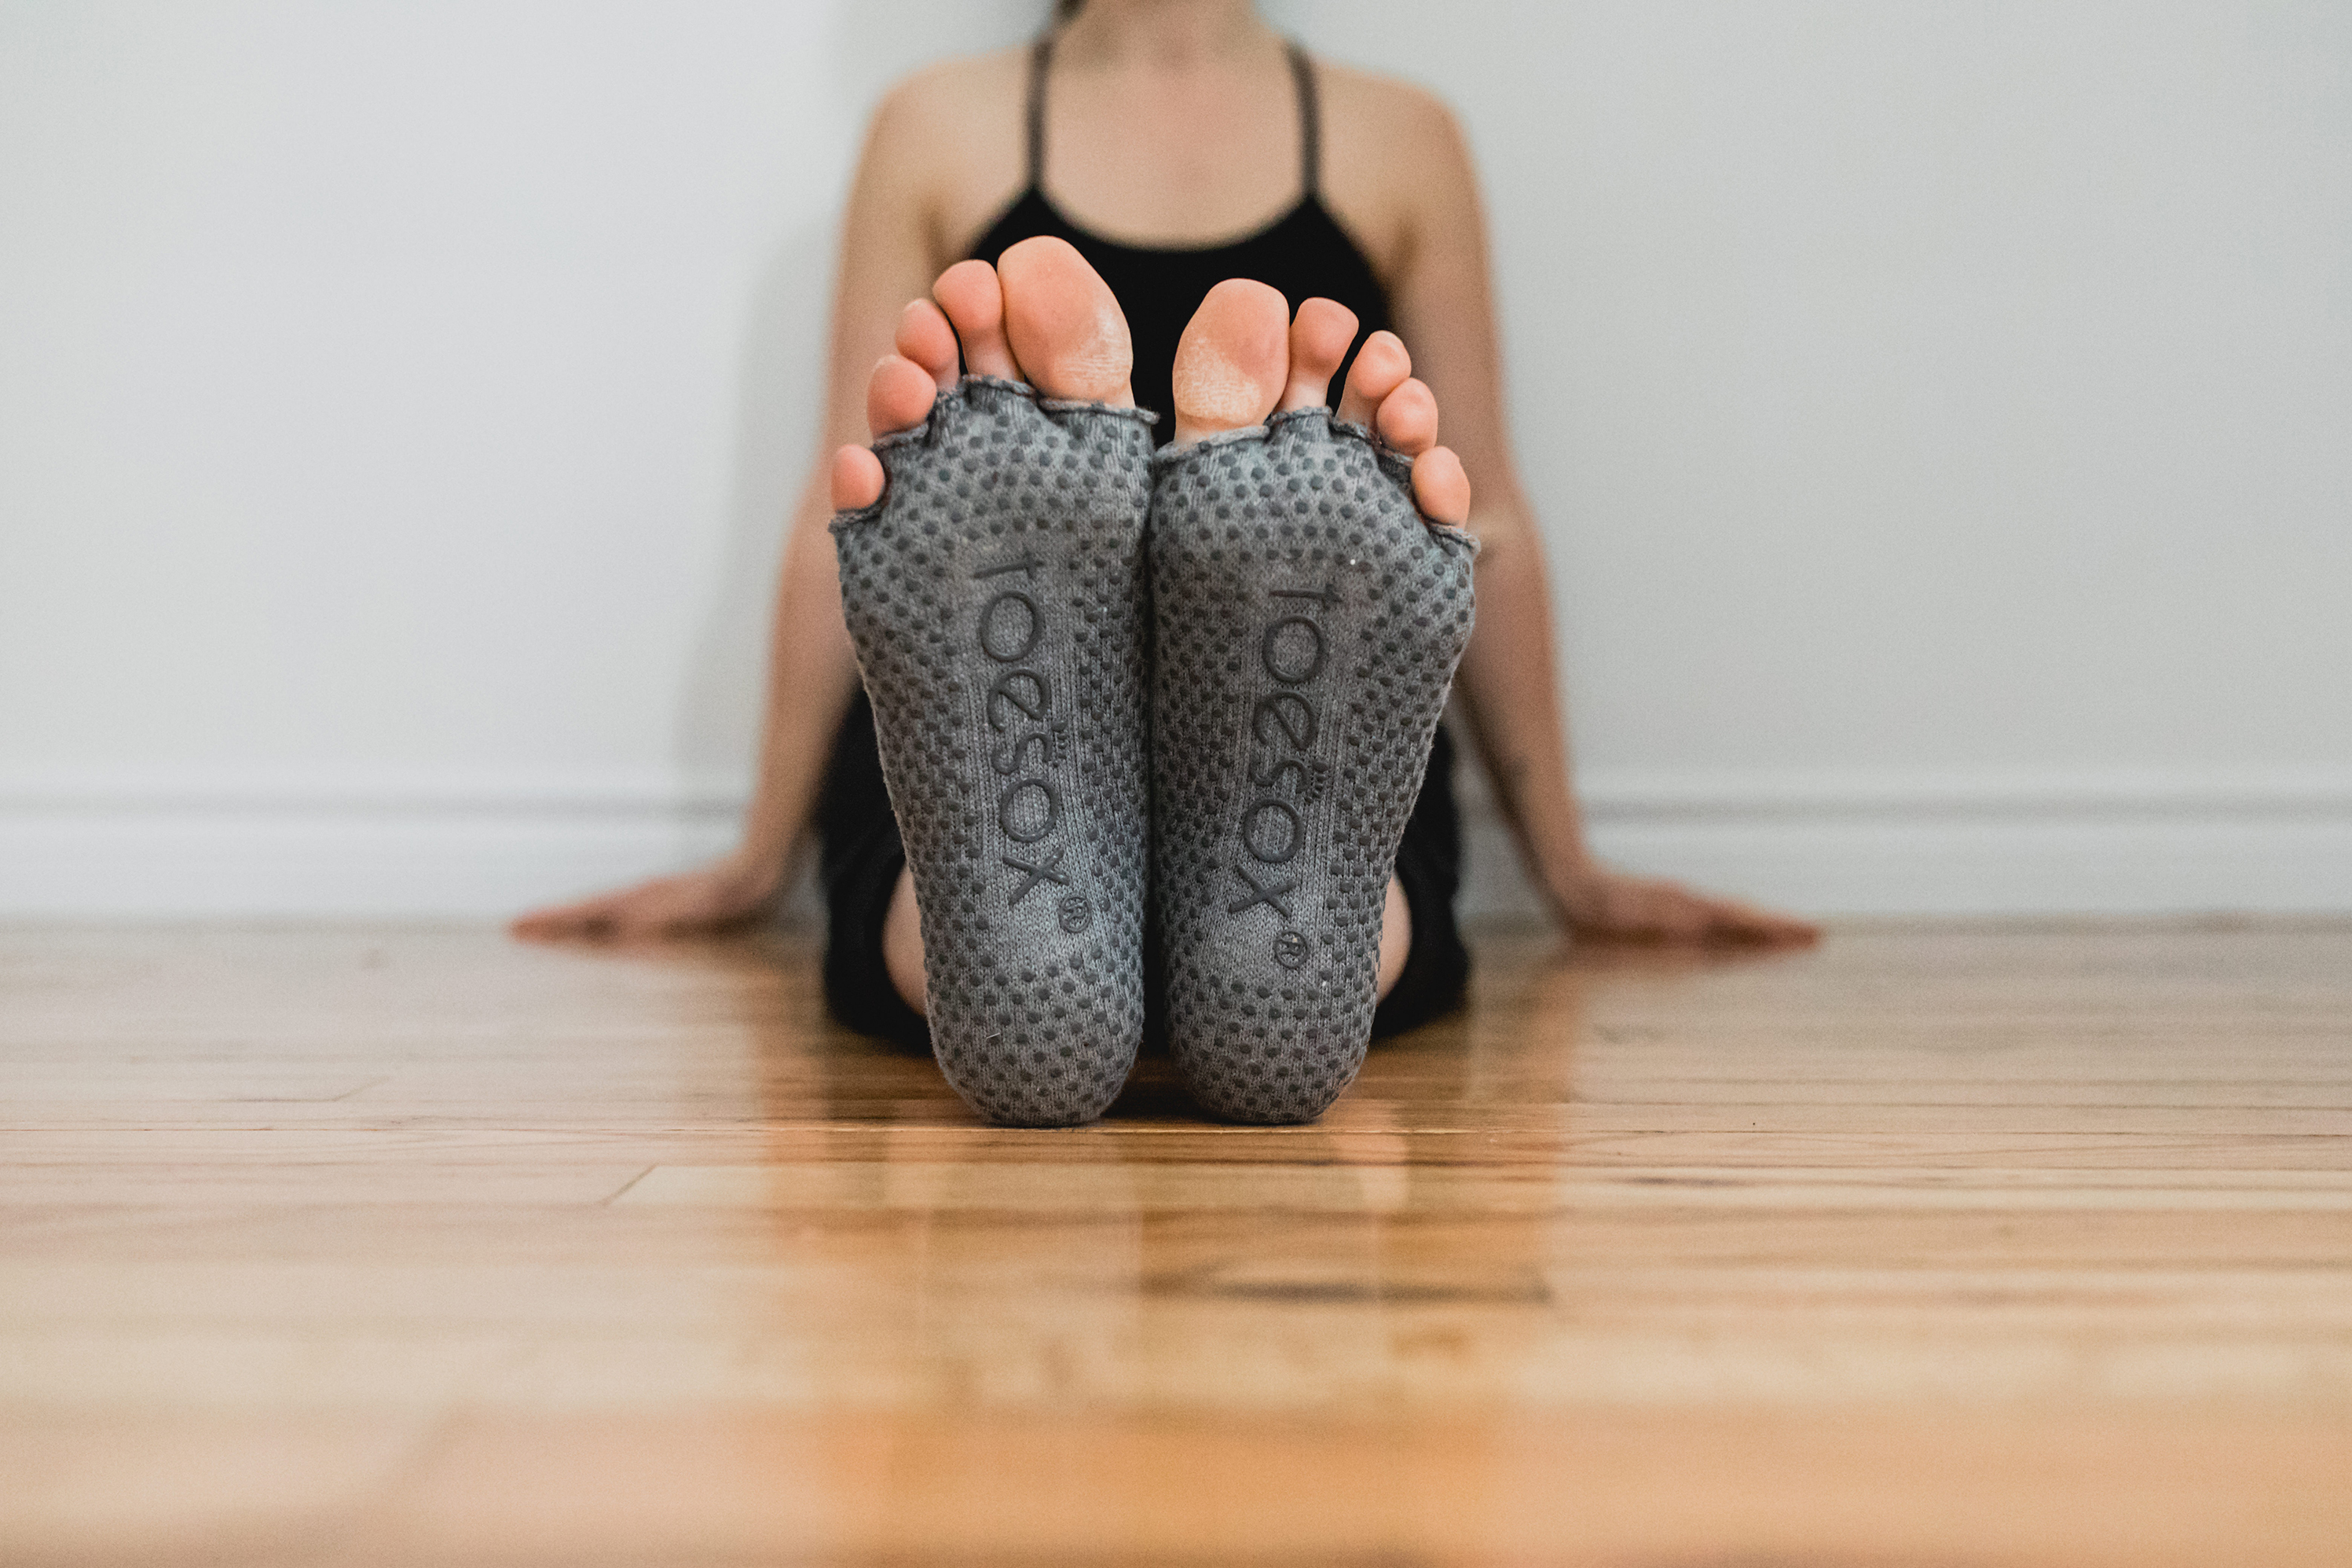 Bella Half Toe Grip Socks let your toes be free during yoga